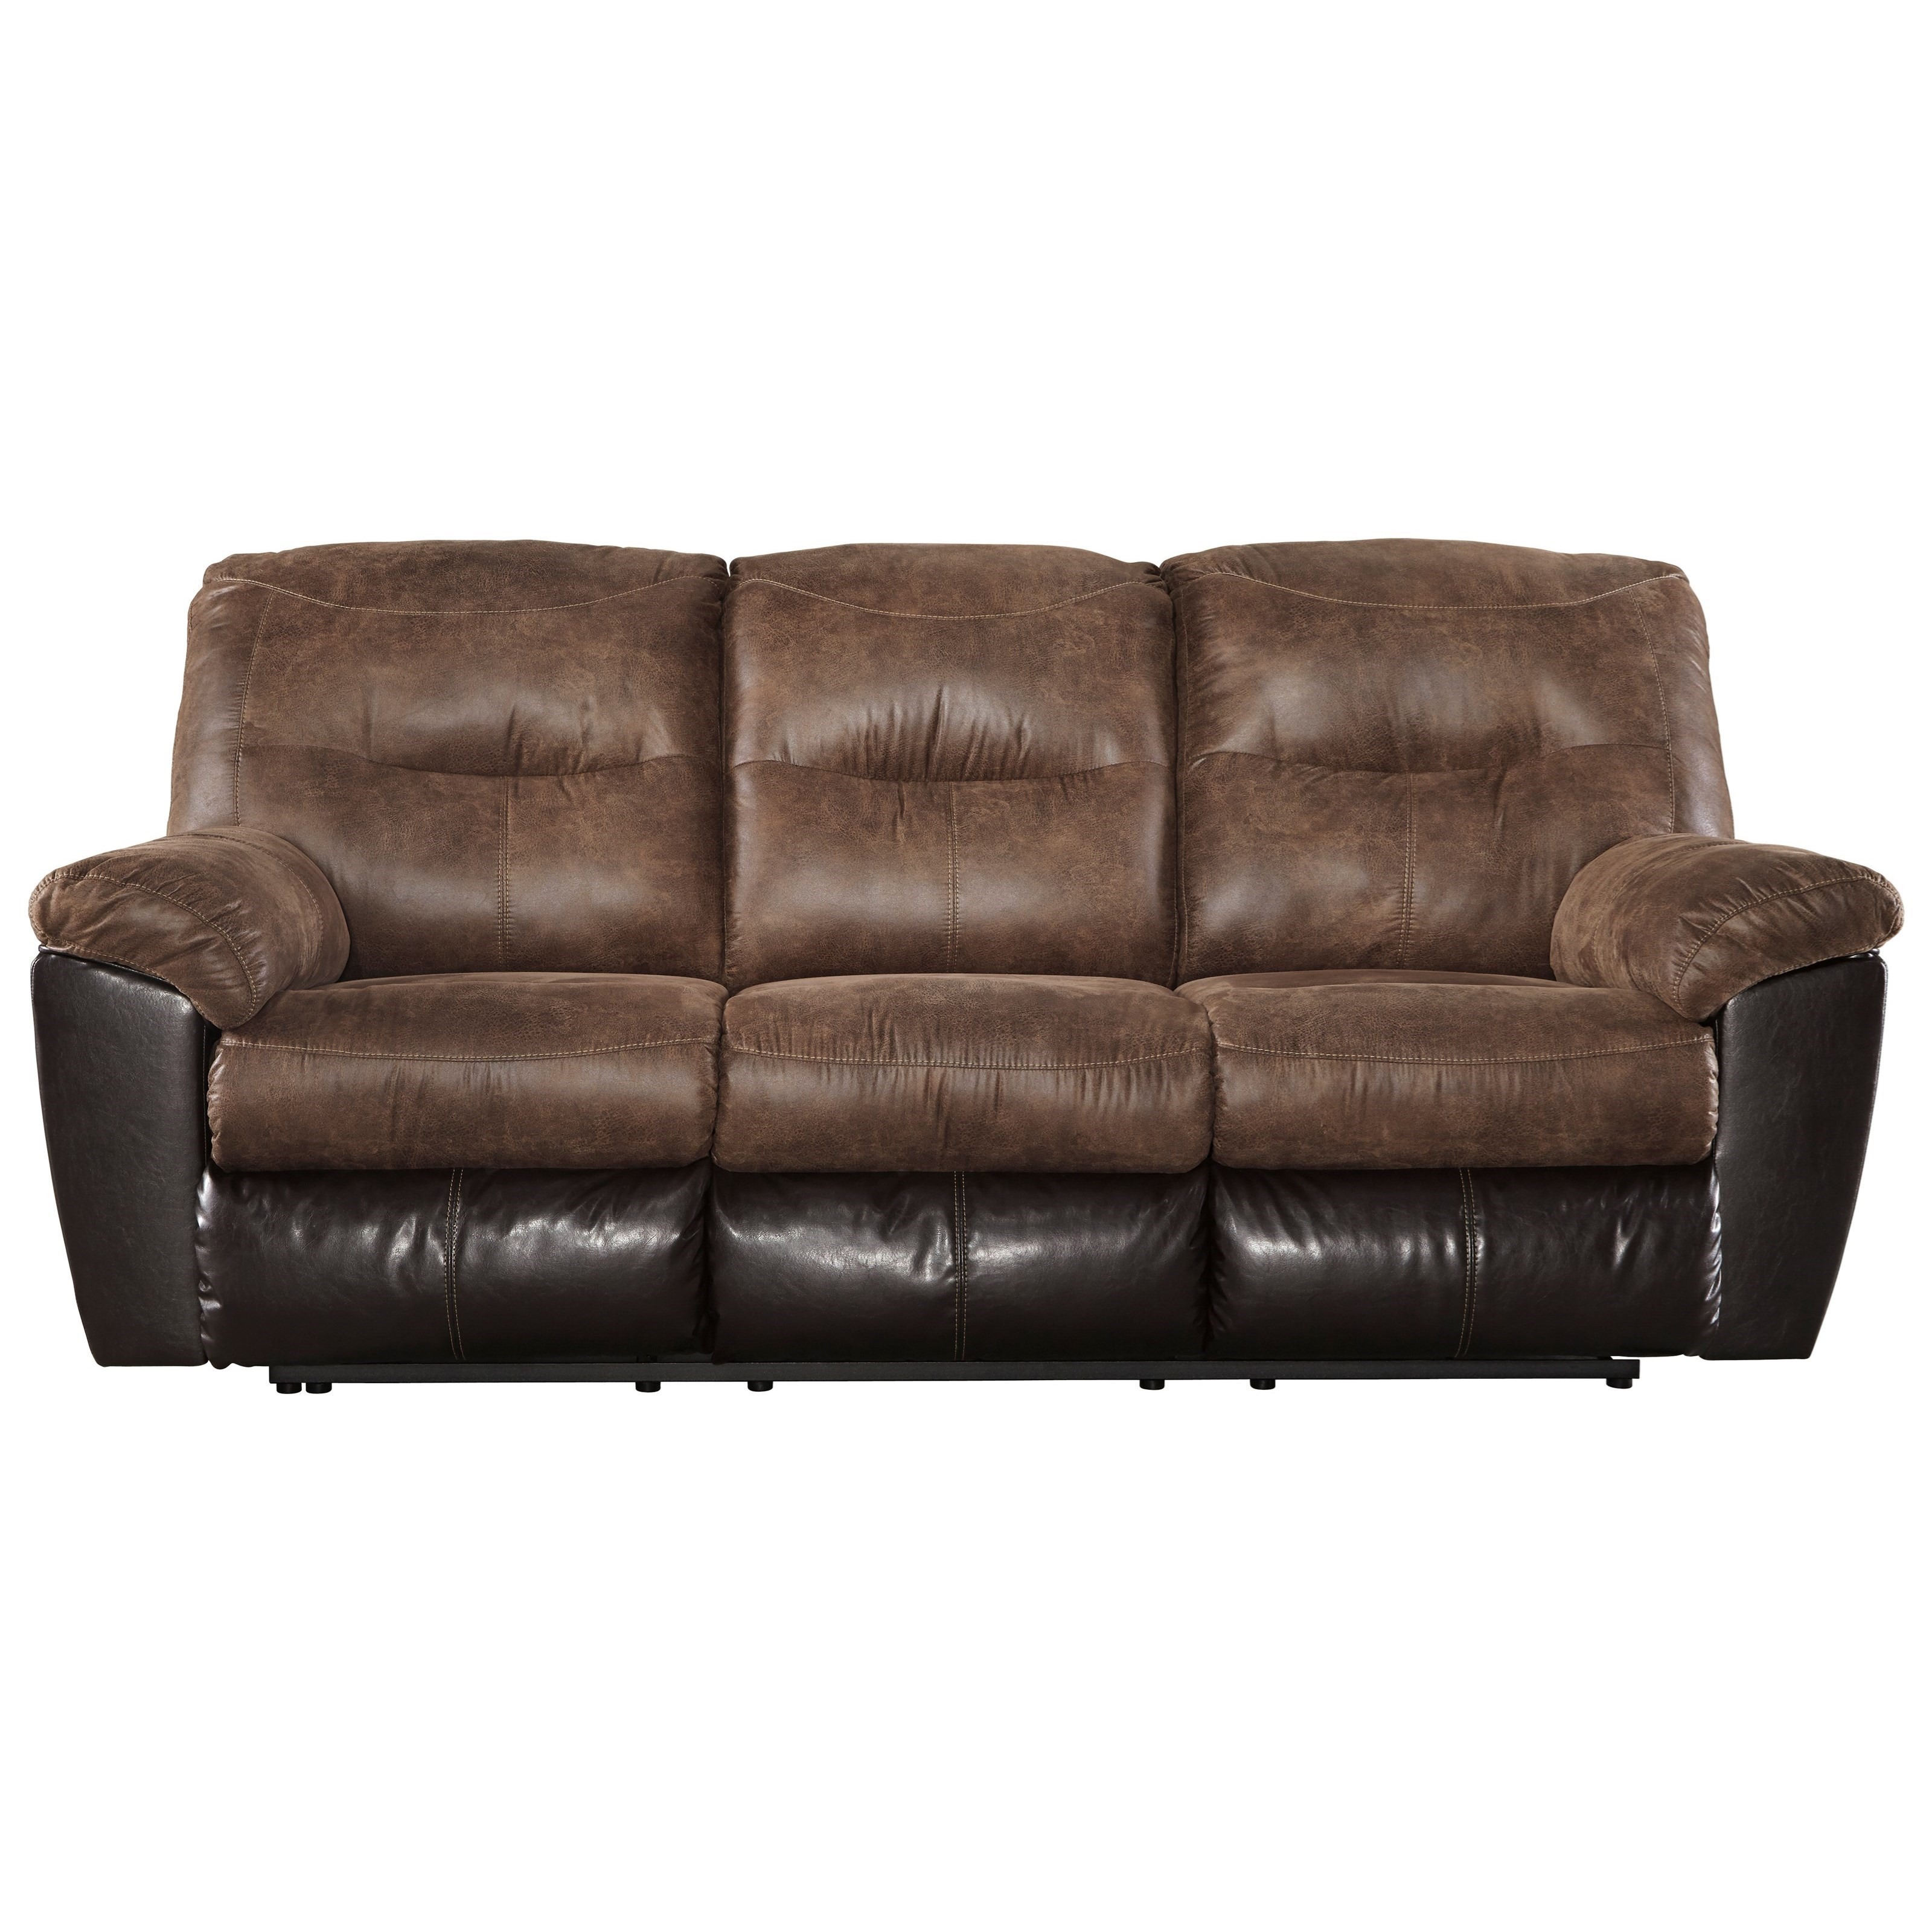 Signature Design By Ashley Follett Two Tone Faux Leather Reclining Sofa |  Royal Furniture | Reclining Sofas